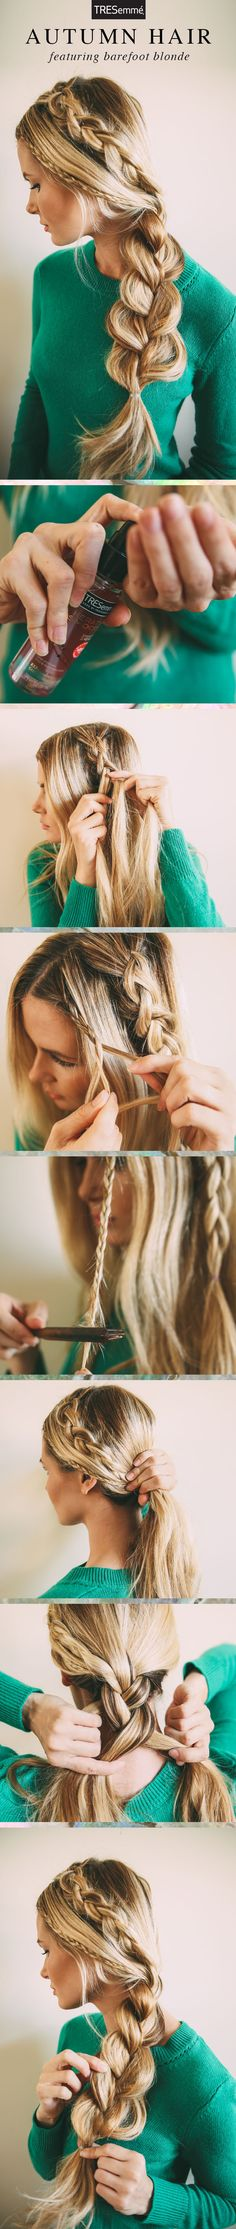 Autumn Braid Hair | #hair #diy #tutorial #beauty #style #autumn #braid #boho #bohemian #festivalhair #coachella